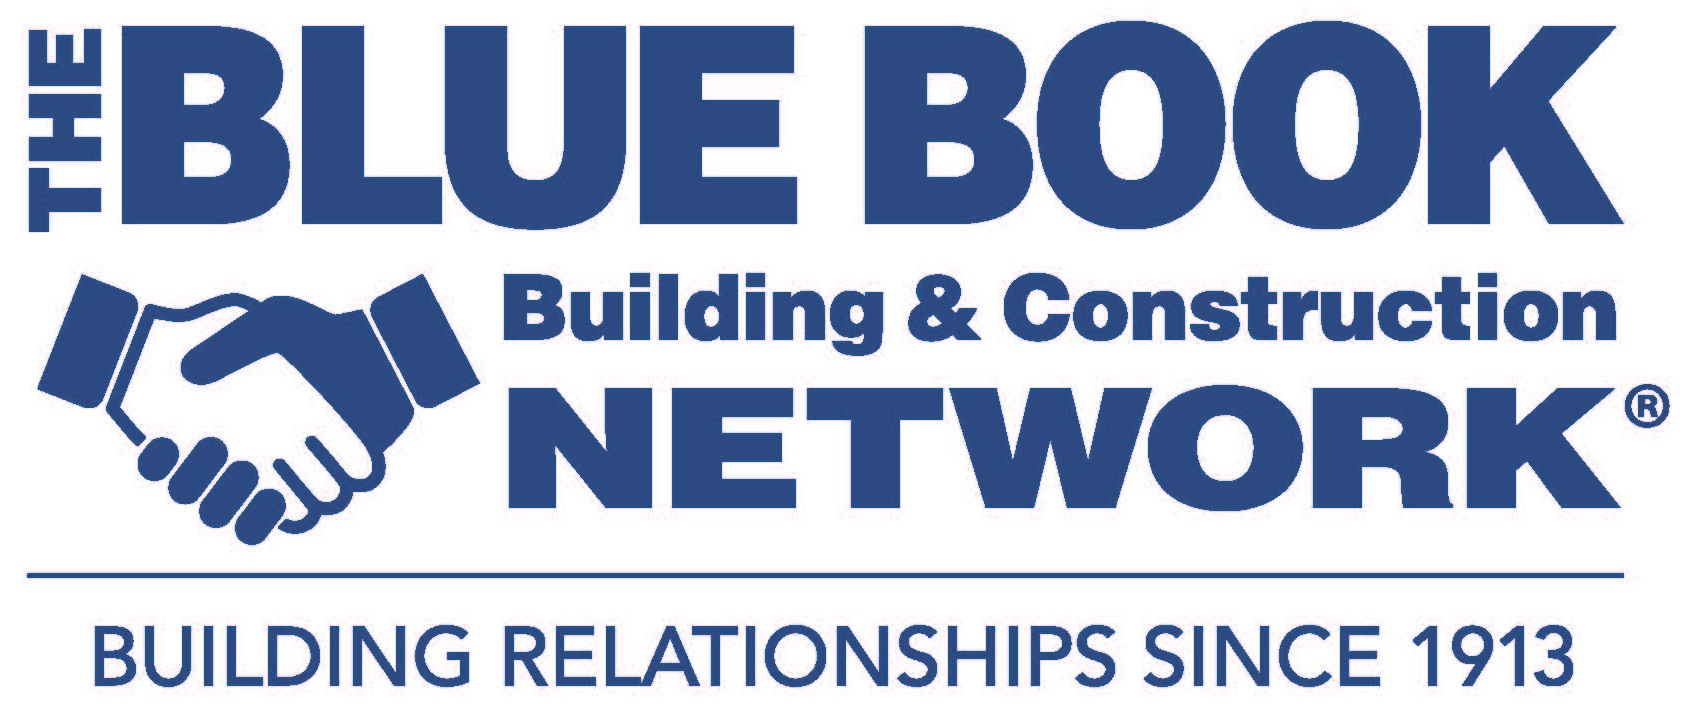 Blue Book of Construction